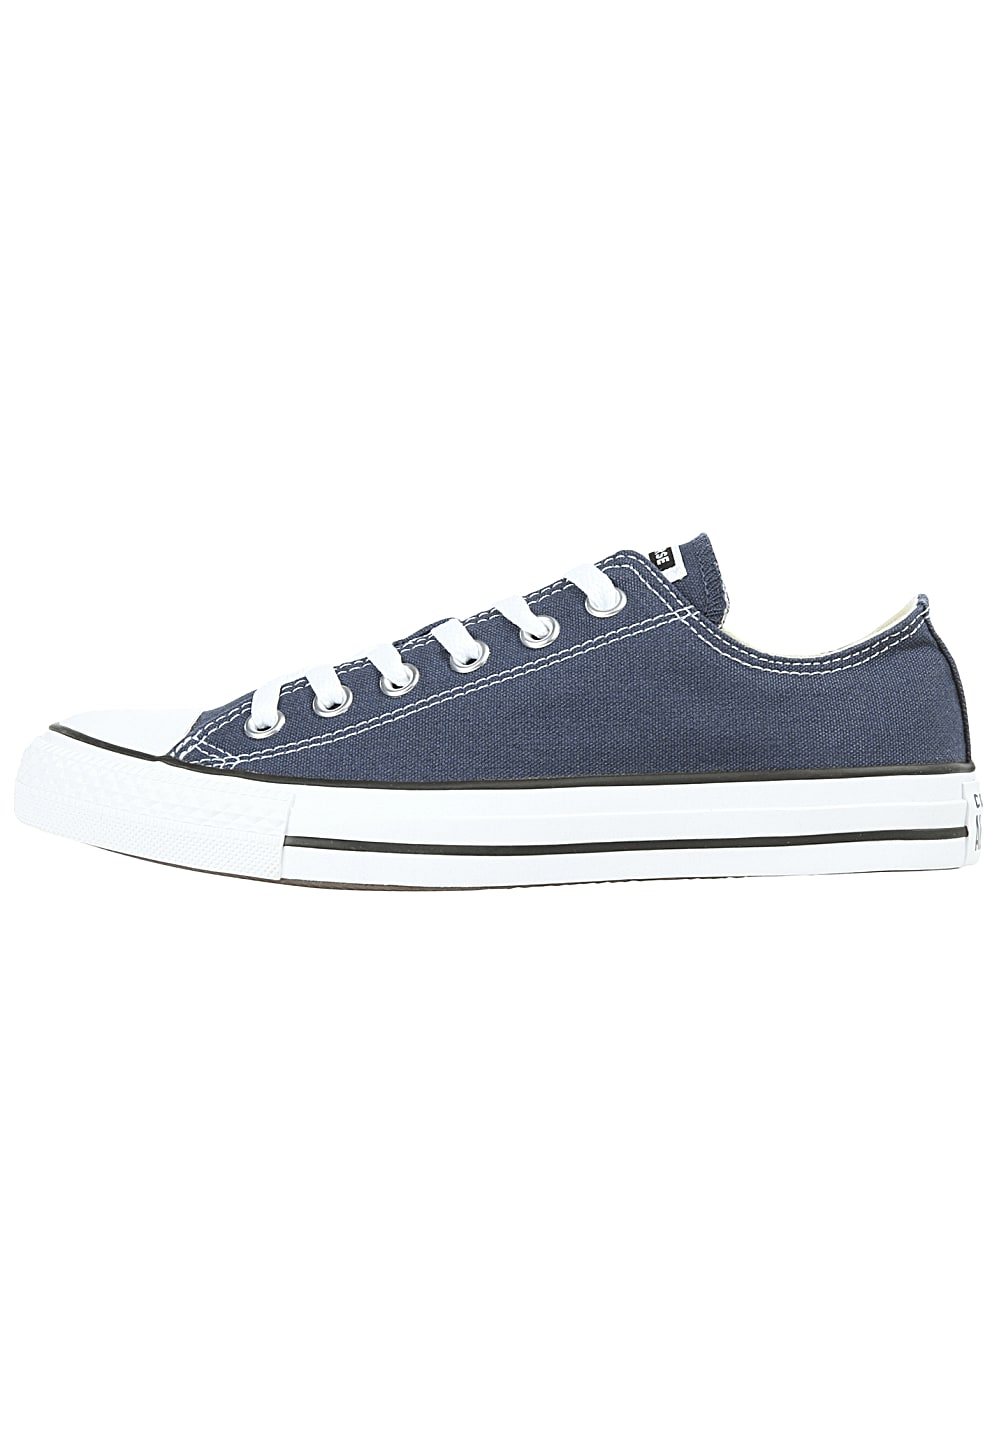 Converse All Star Ox - Sneaker - Blau